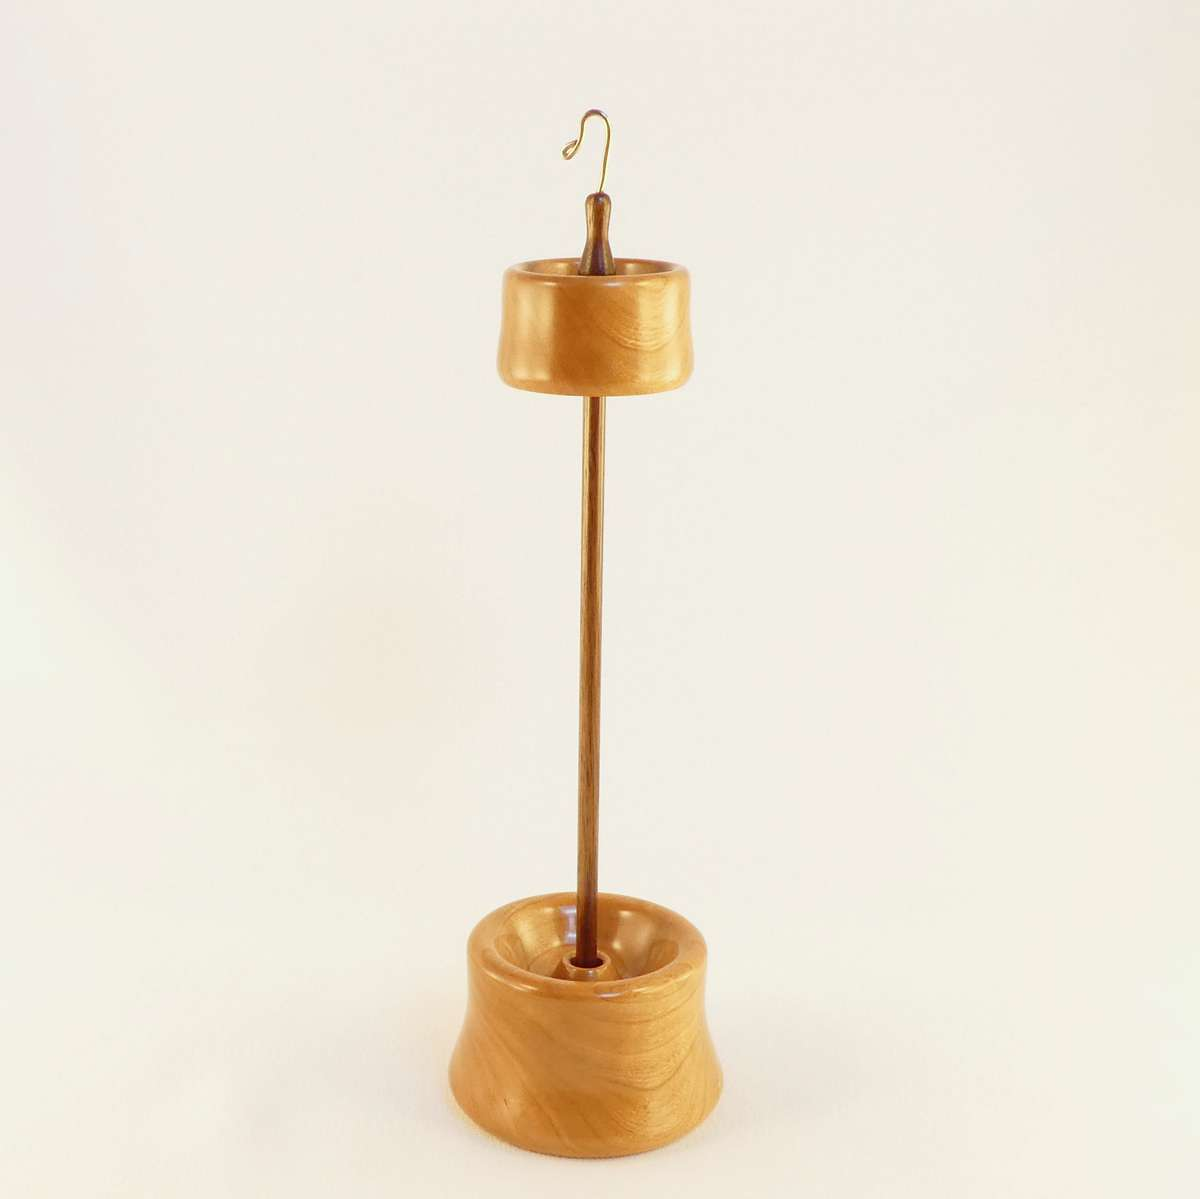 One of a kind handmade high whorl suspended spindle for spinning yarn from wool with matching display storage stand. Woods include Cherry and Black Walnut luxury heirloom quality finish and design by Cynthia D. Haney